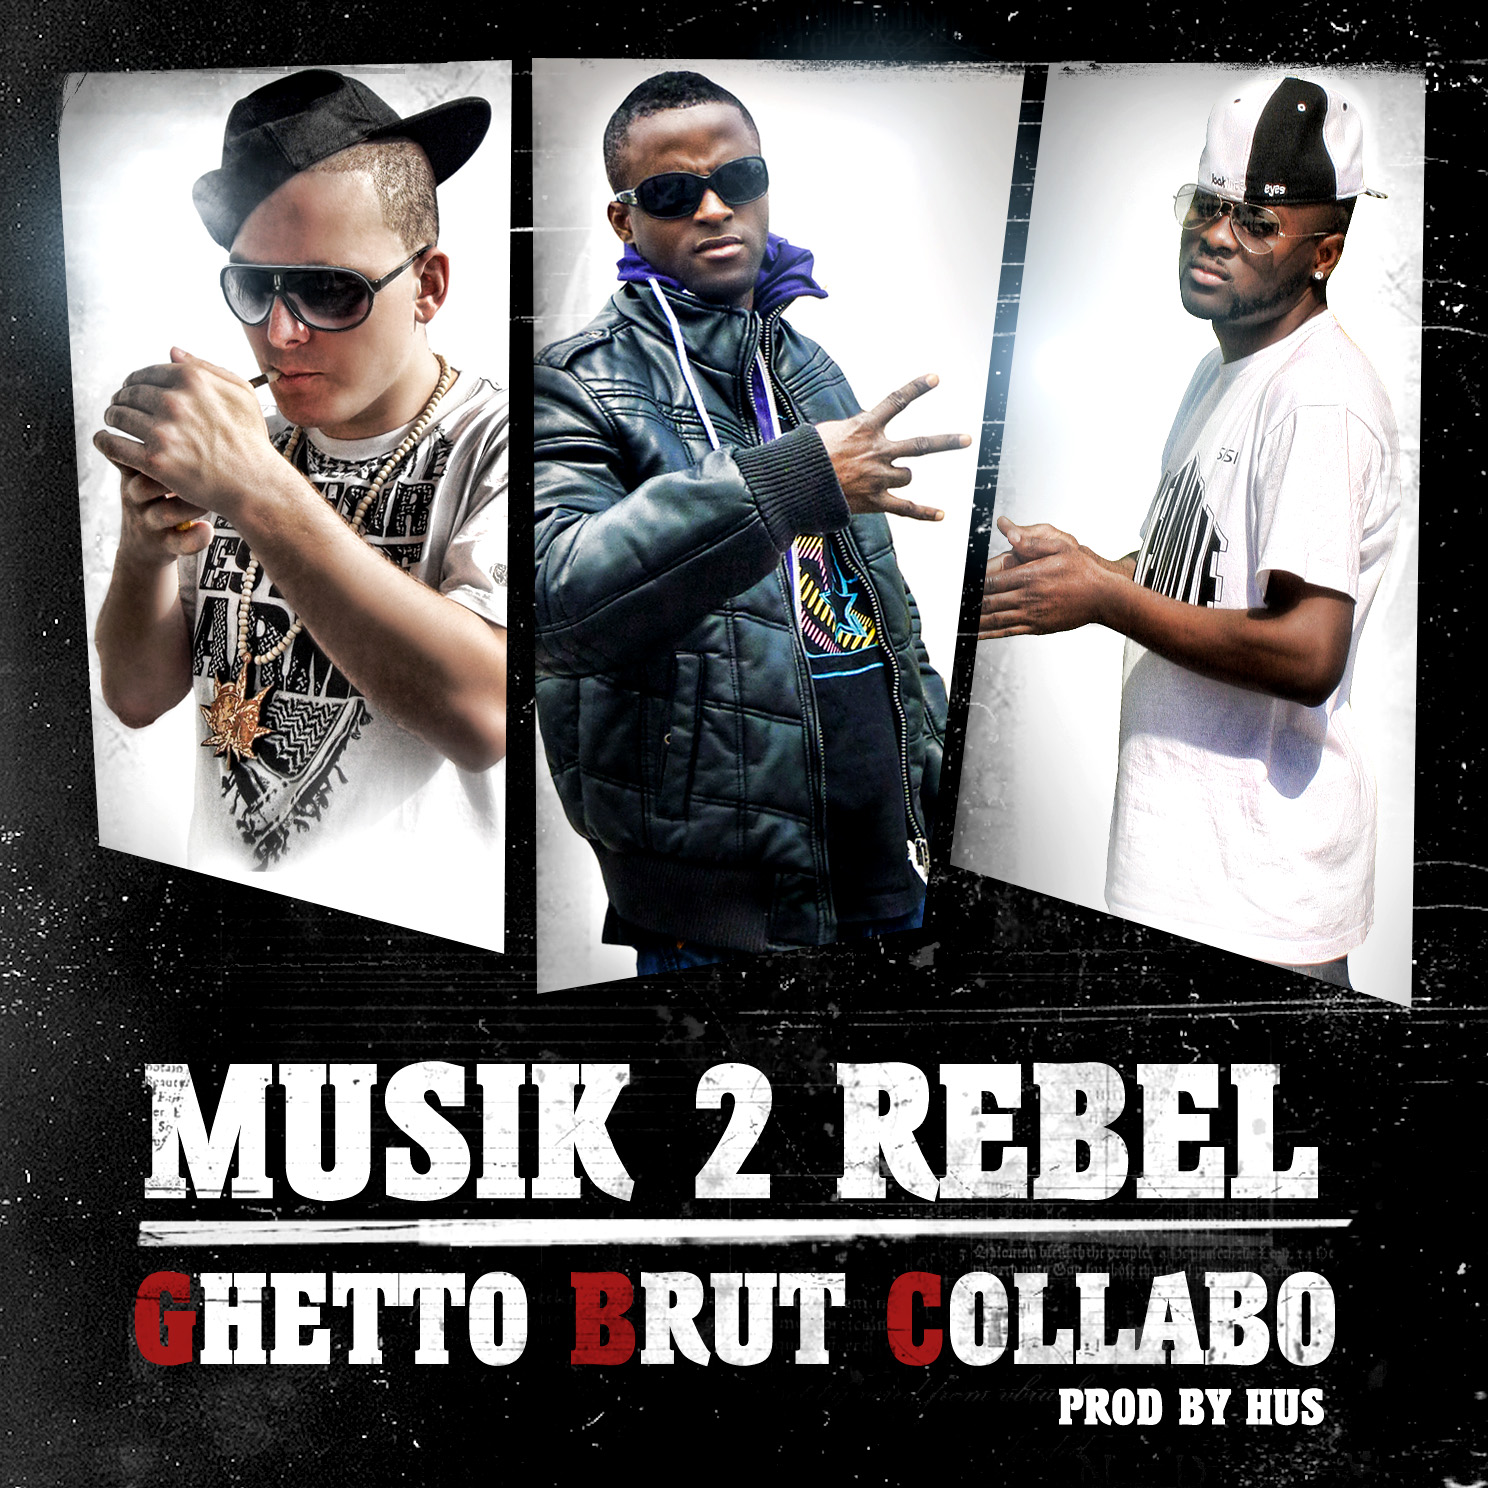 Ghetto Brut Collabo - Musik de rebel